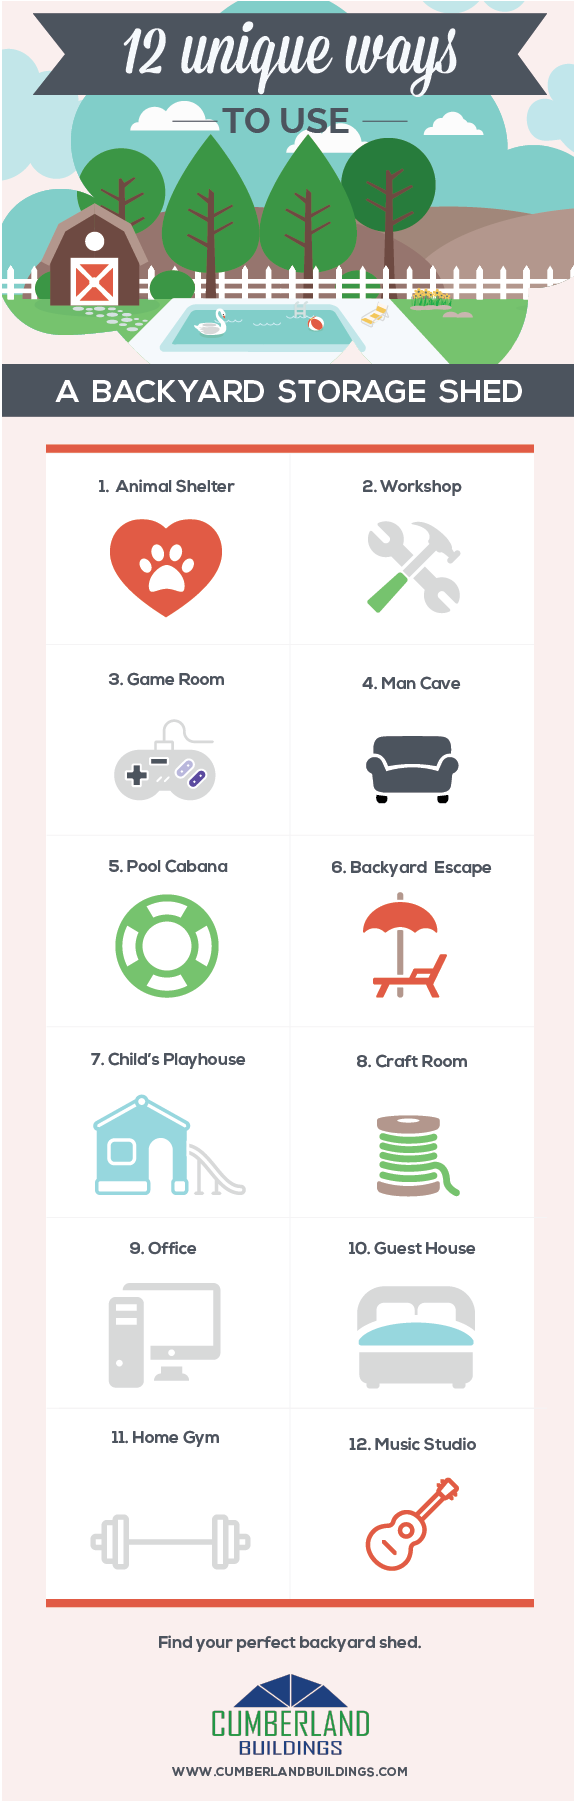 12 Unique Ways to Use a Backyard Storage Shed Infographic